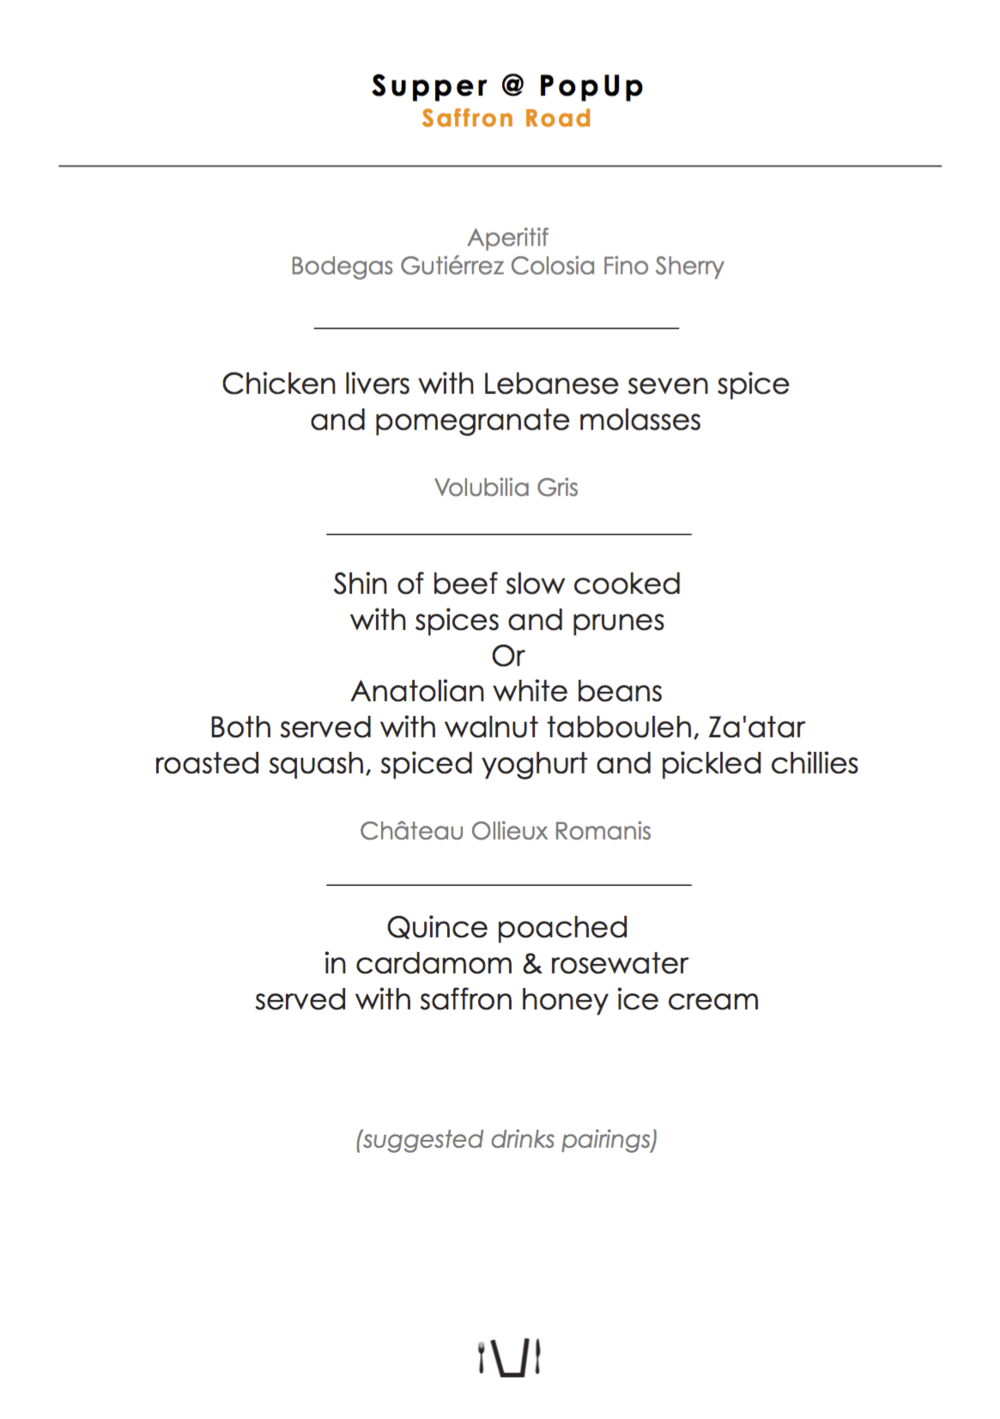 2015-11 supper popup printed table menu Saffron Road.png